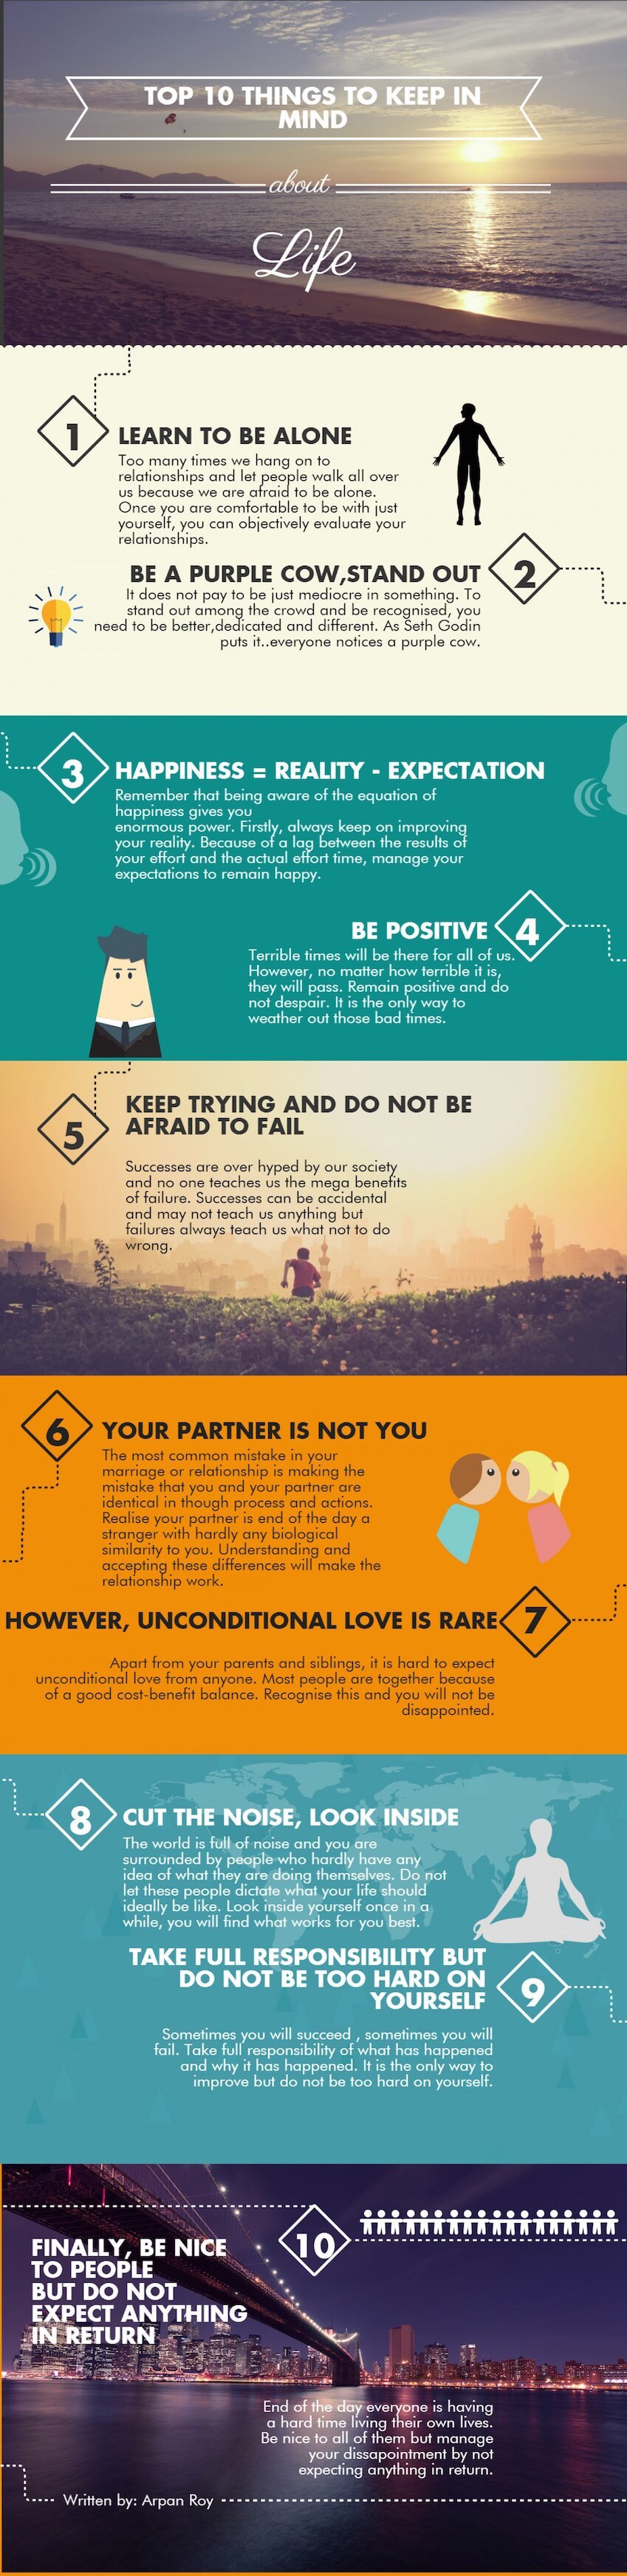 life-lessons-infographic